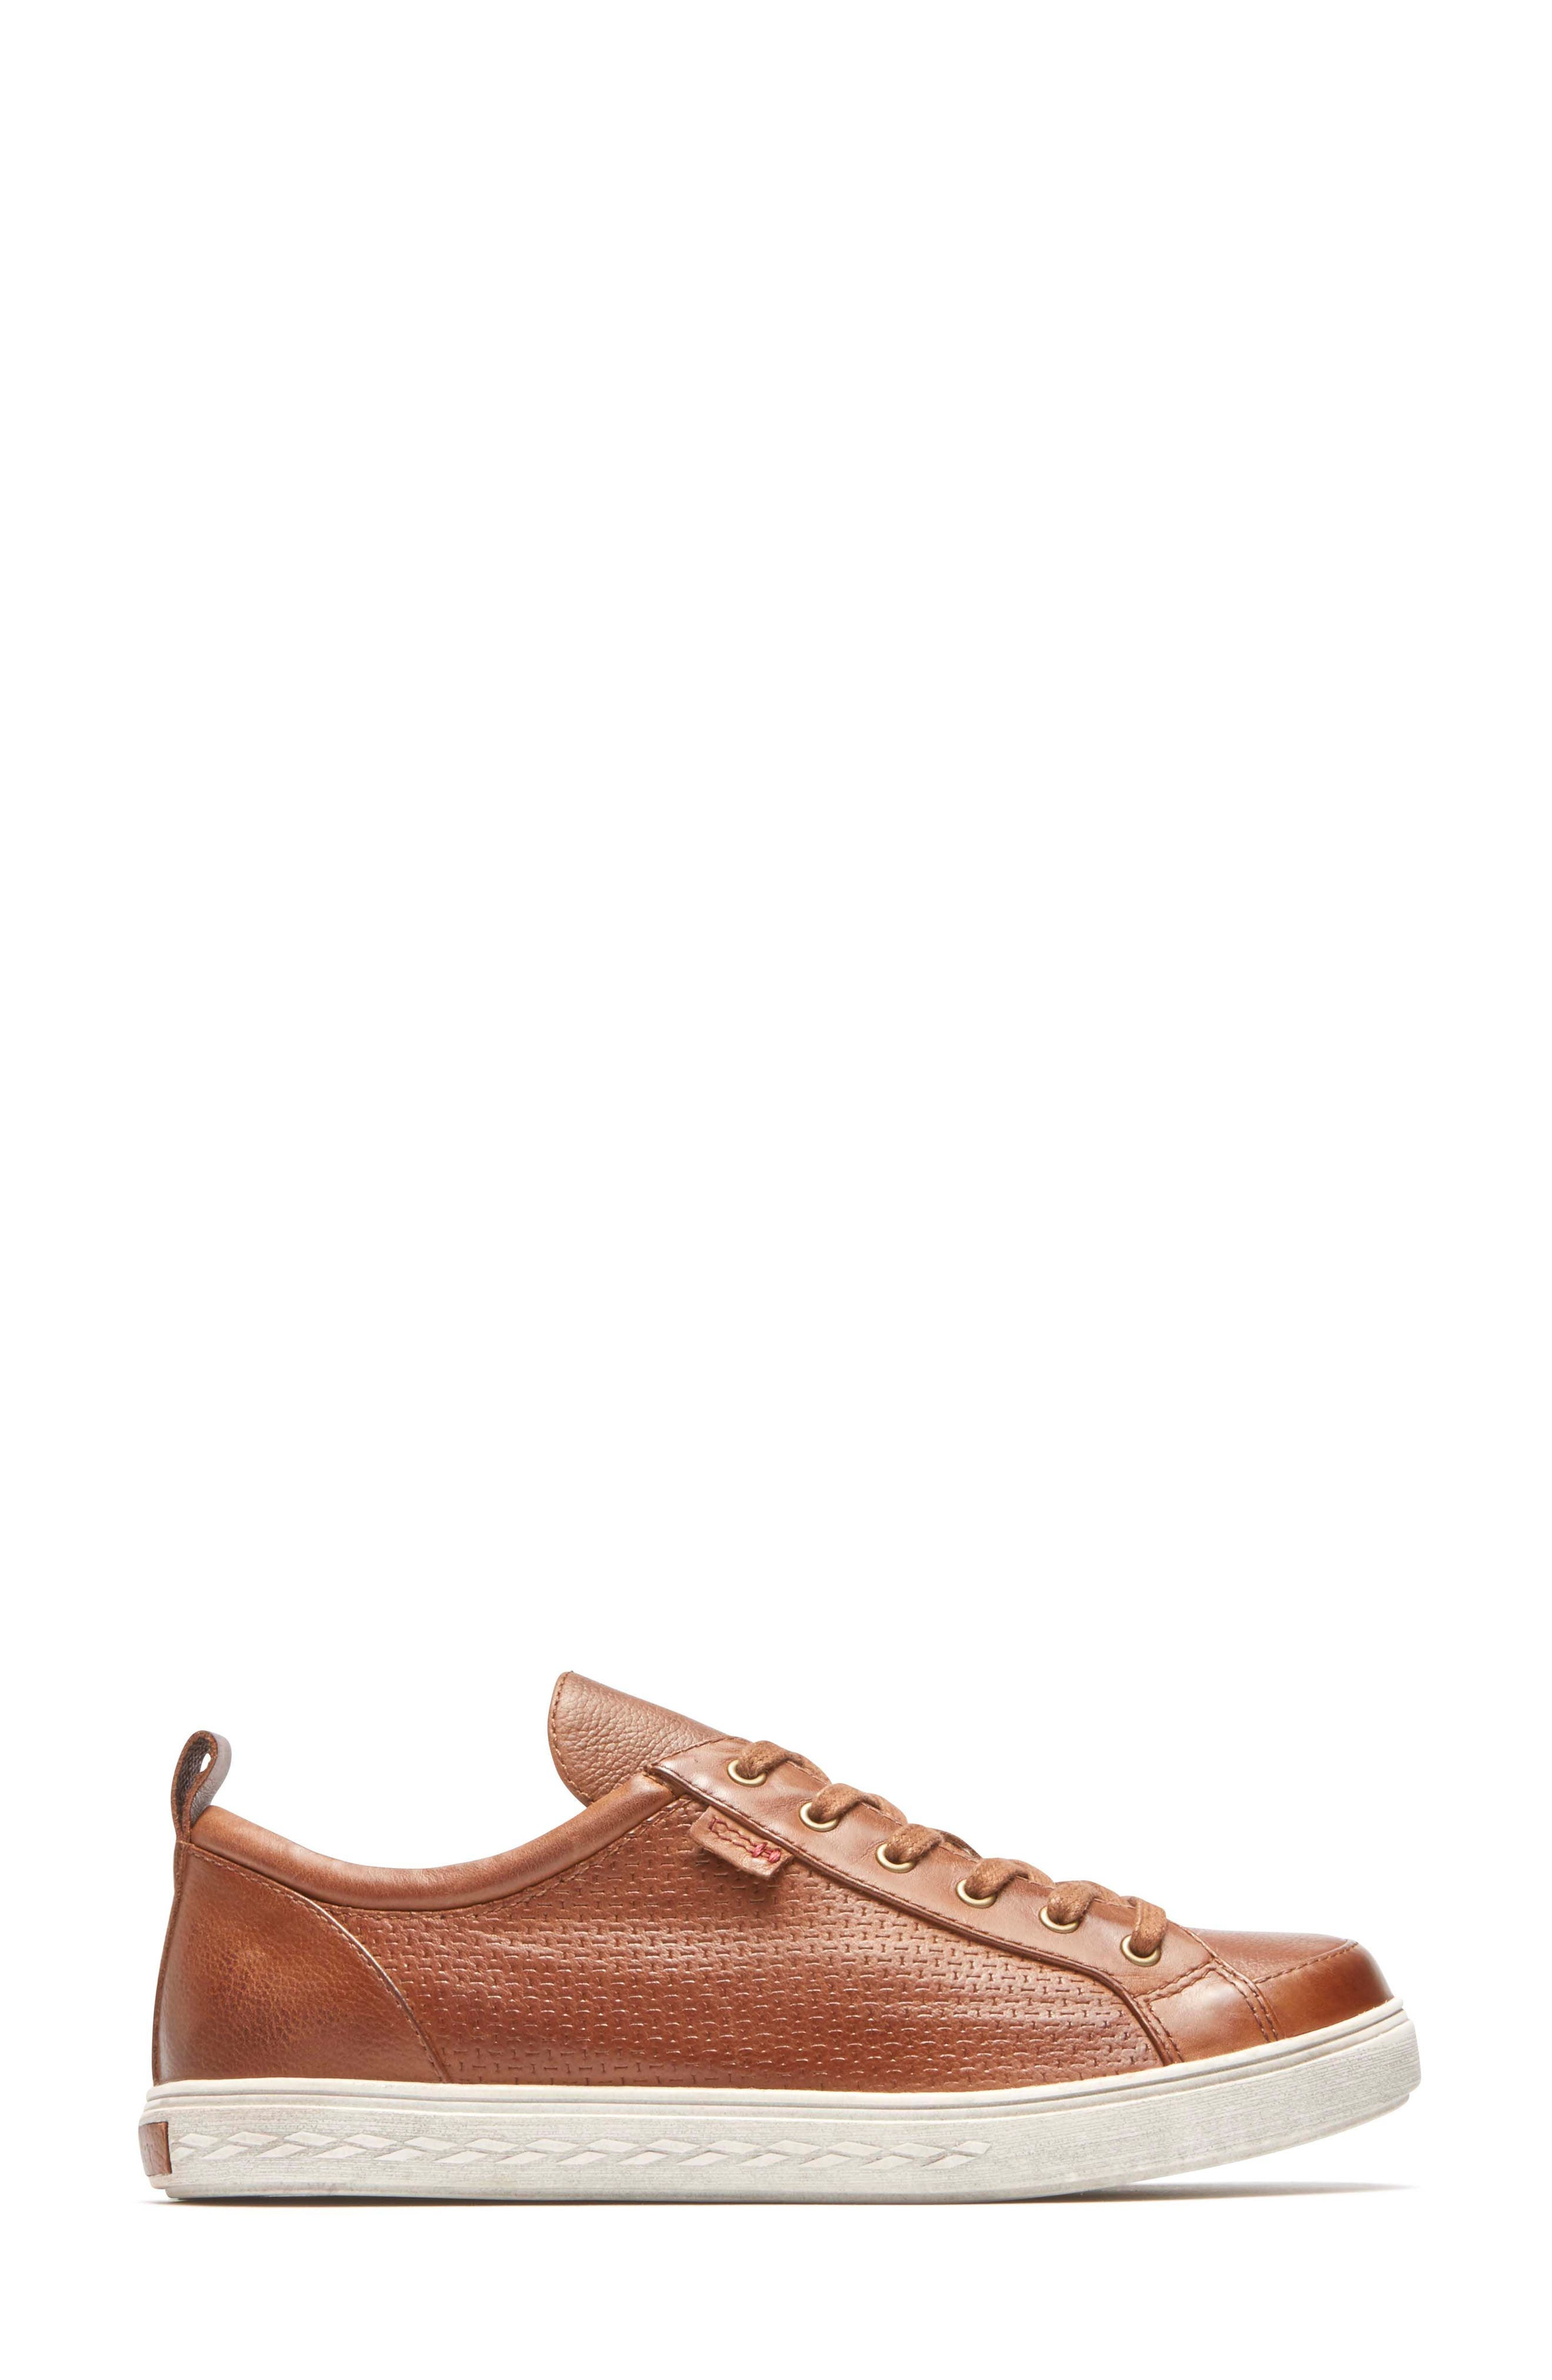 Willa Sneaker,                             Alternate thumbnail 3, color,                             ALMOND LEATHER